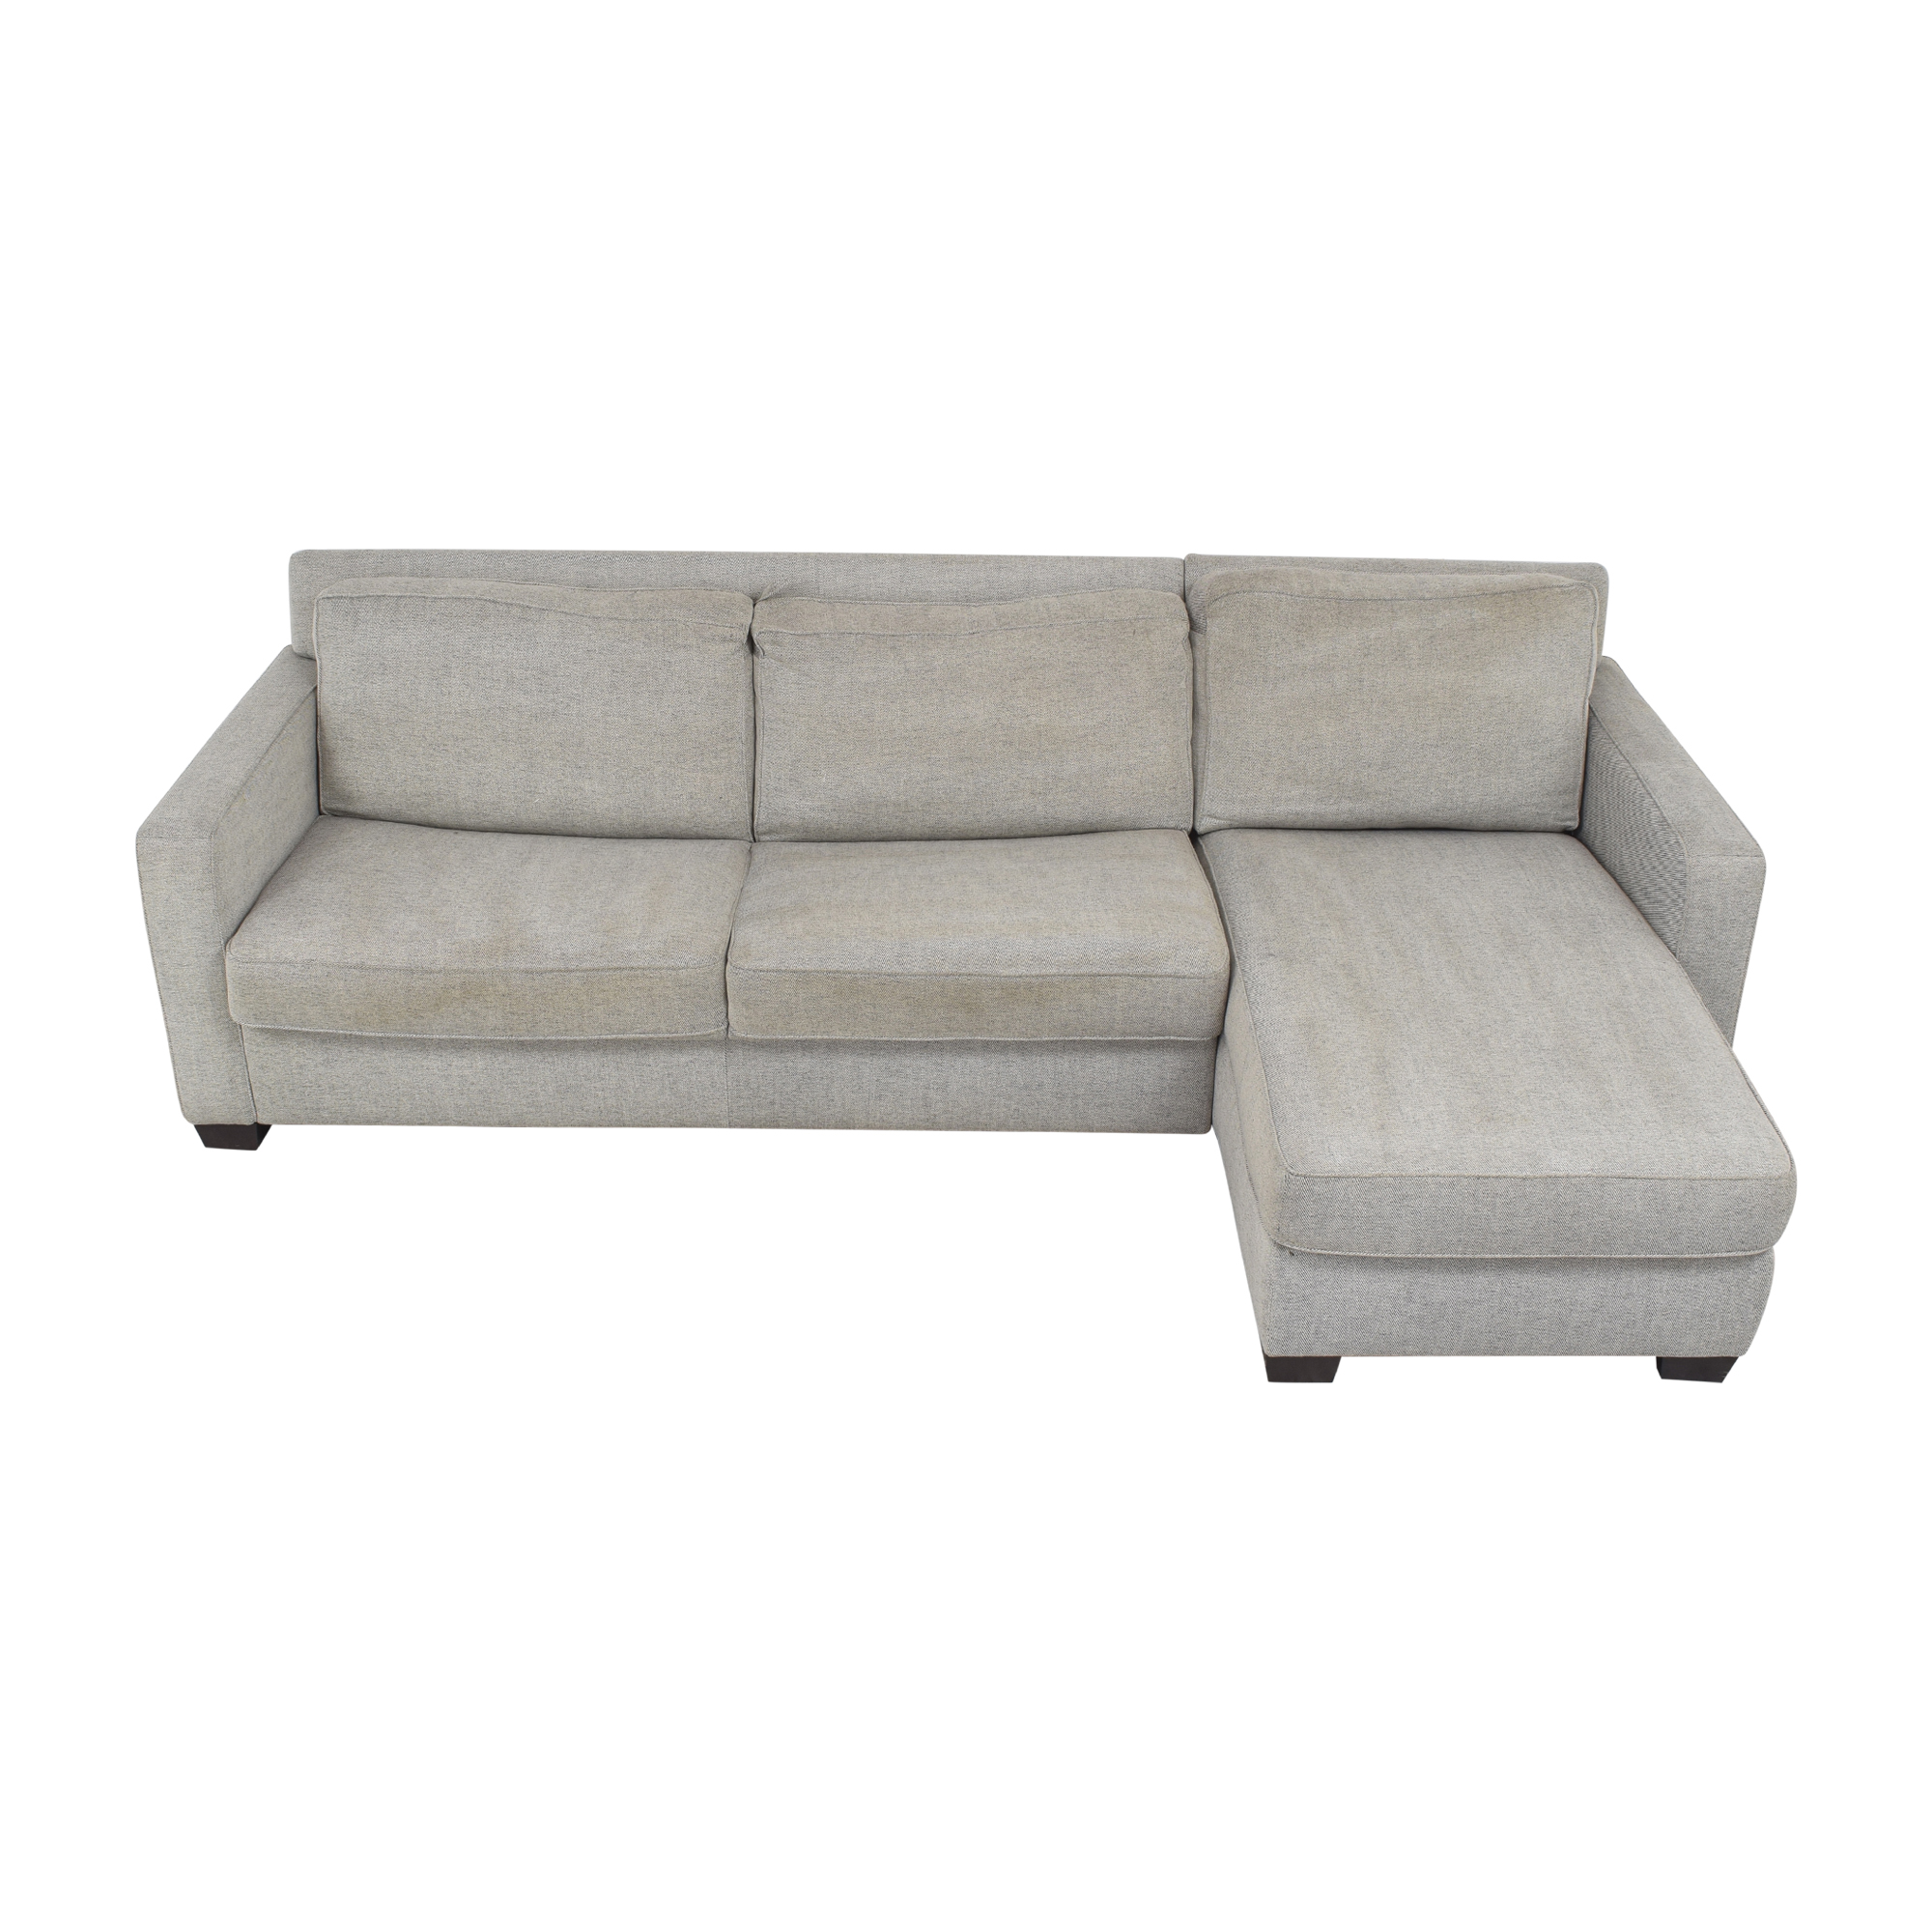 buy West Elm West Elm Henry Two Piece Full Sleeper Sectional Sofa with Storage online